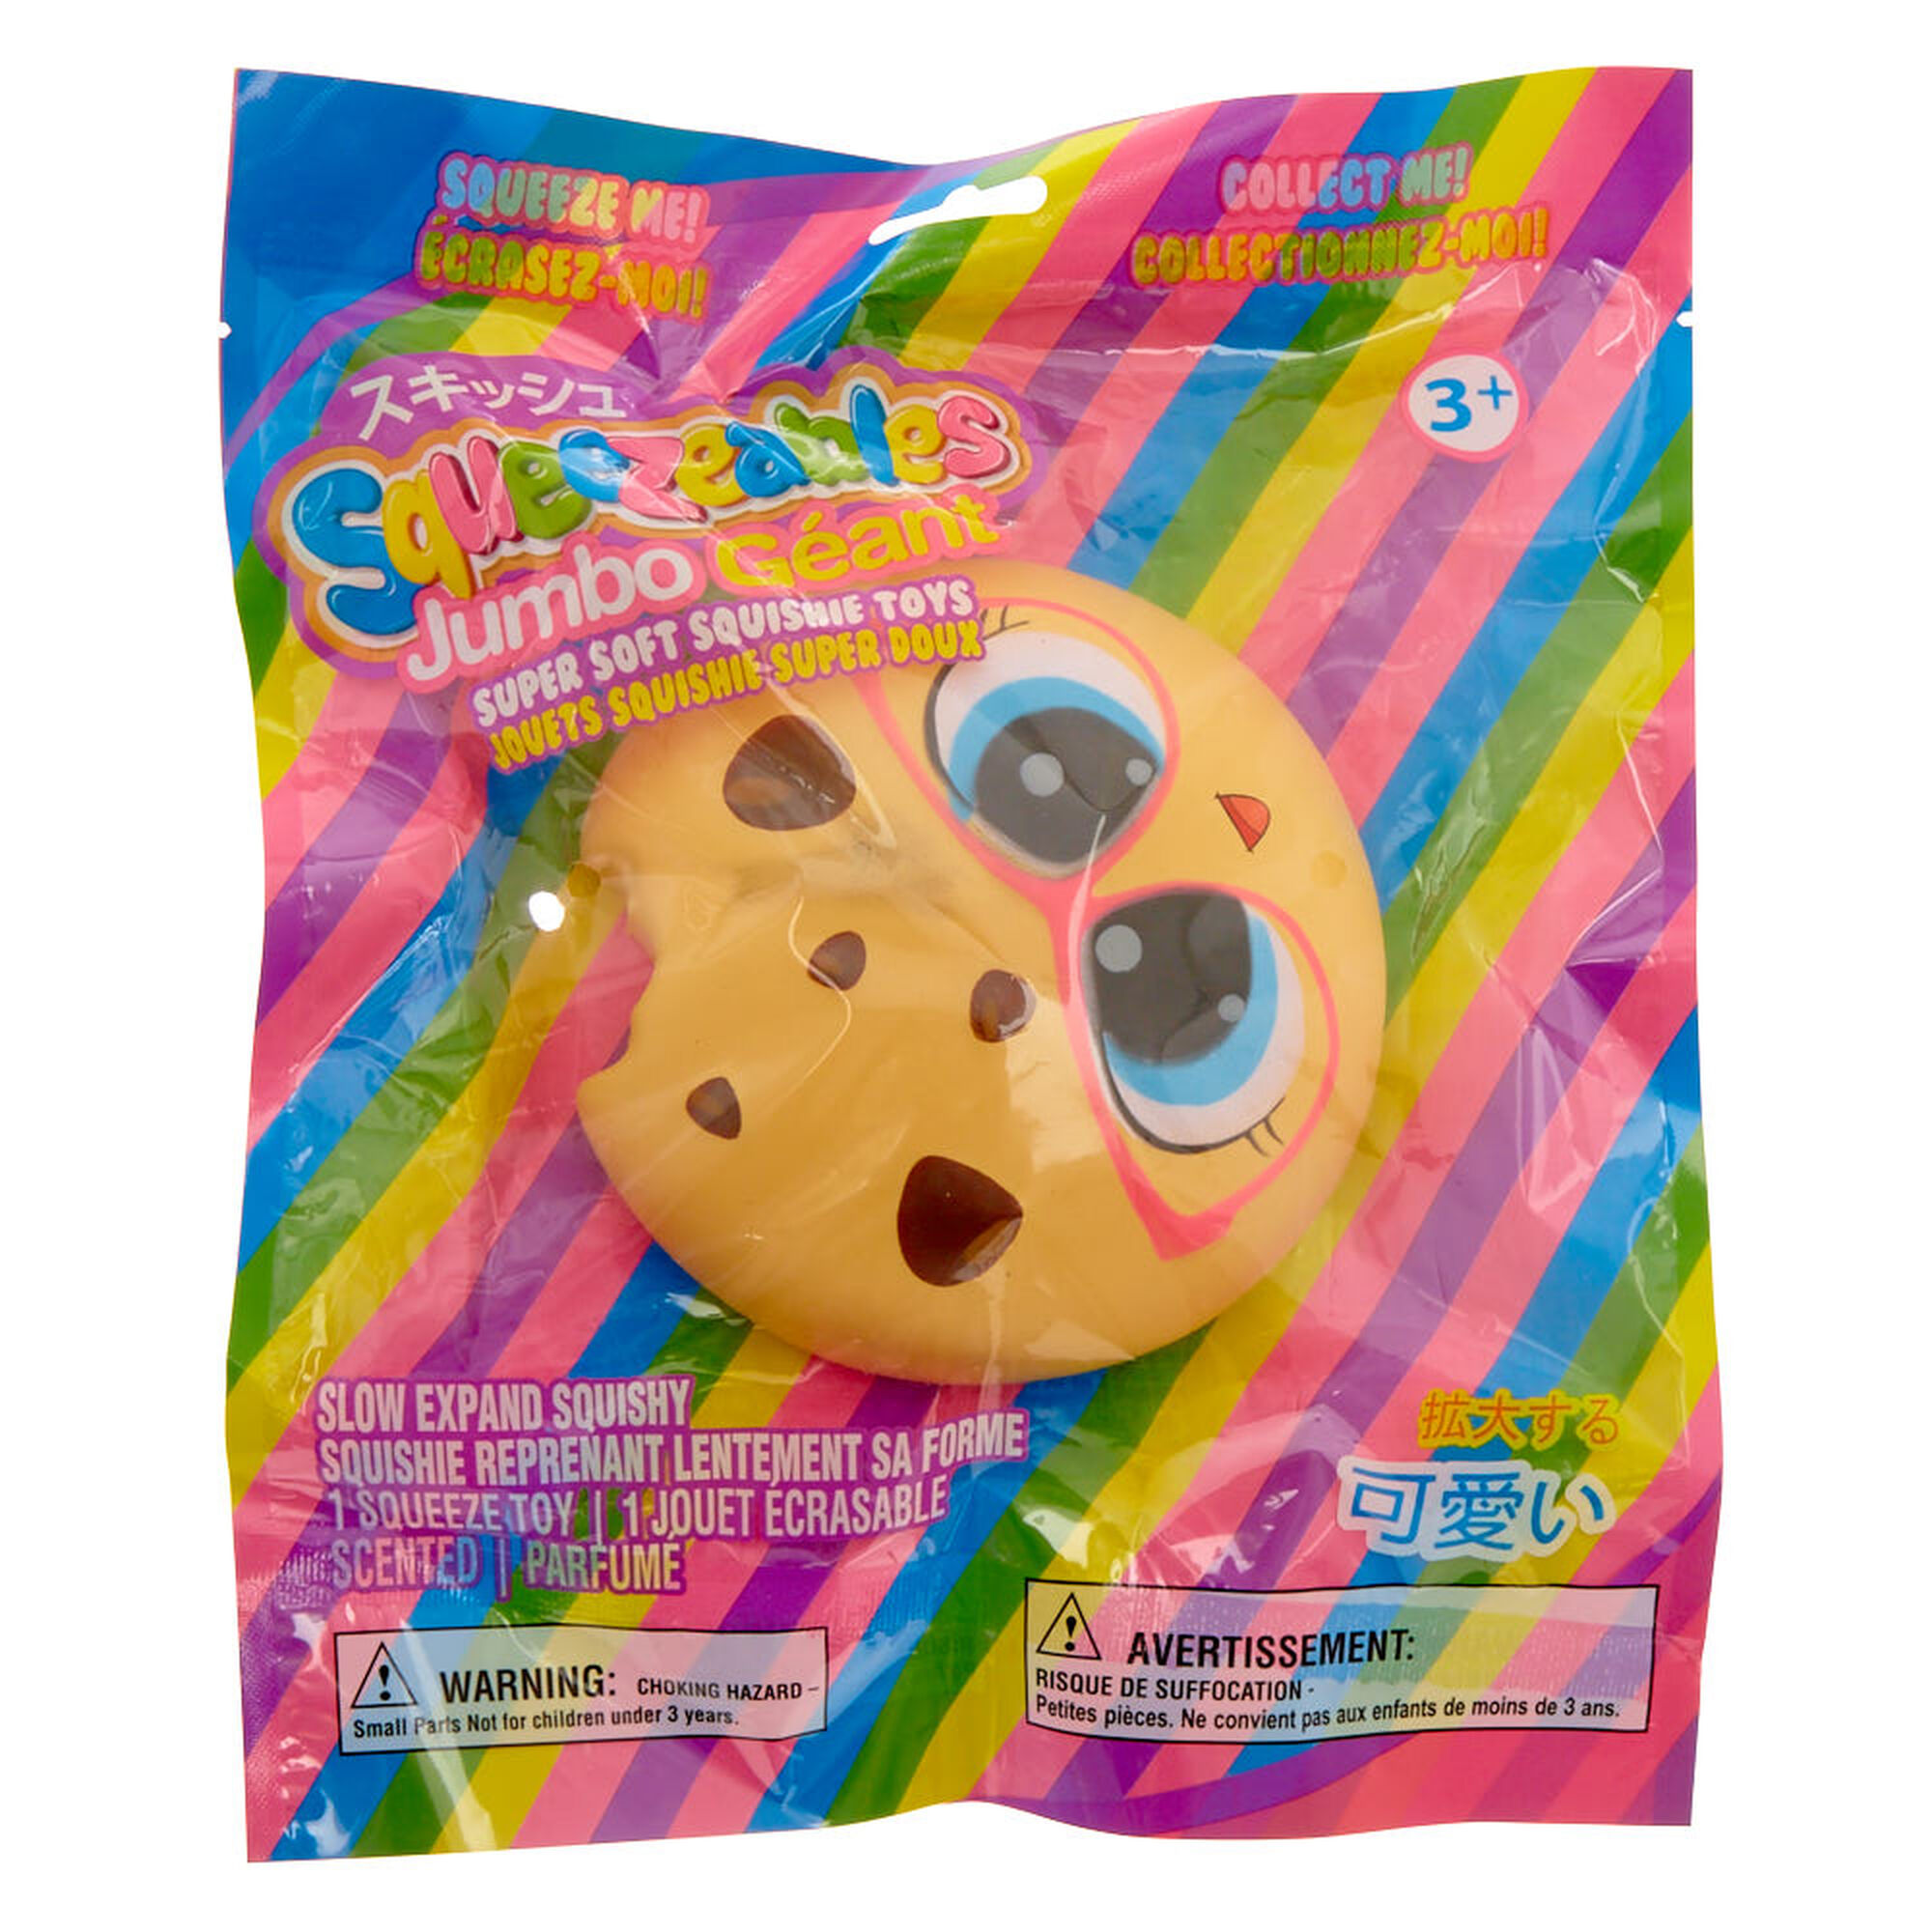 Squishy Chocolate Chip Cookies : Chocolate Chip Cookie Squishy Toy Claire s US